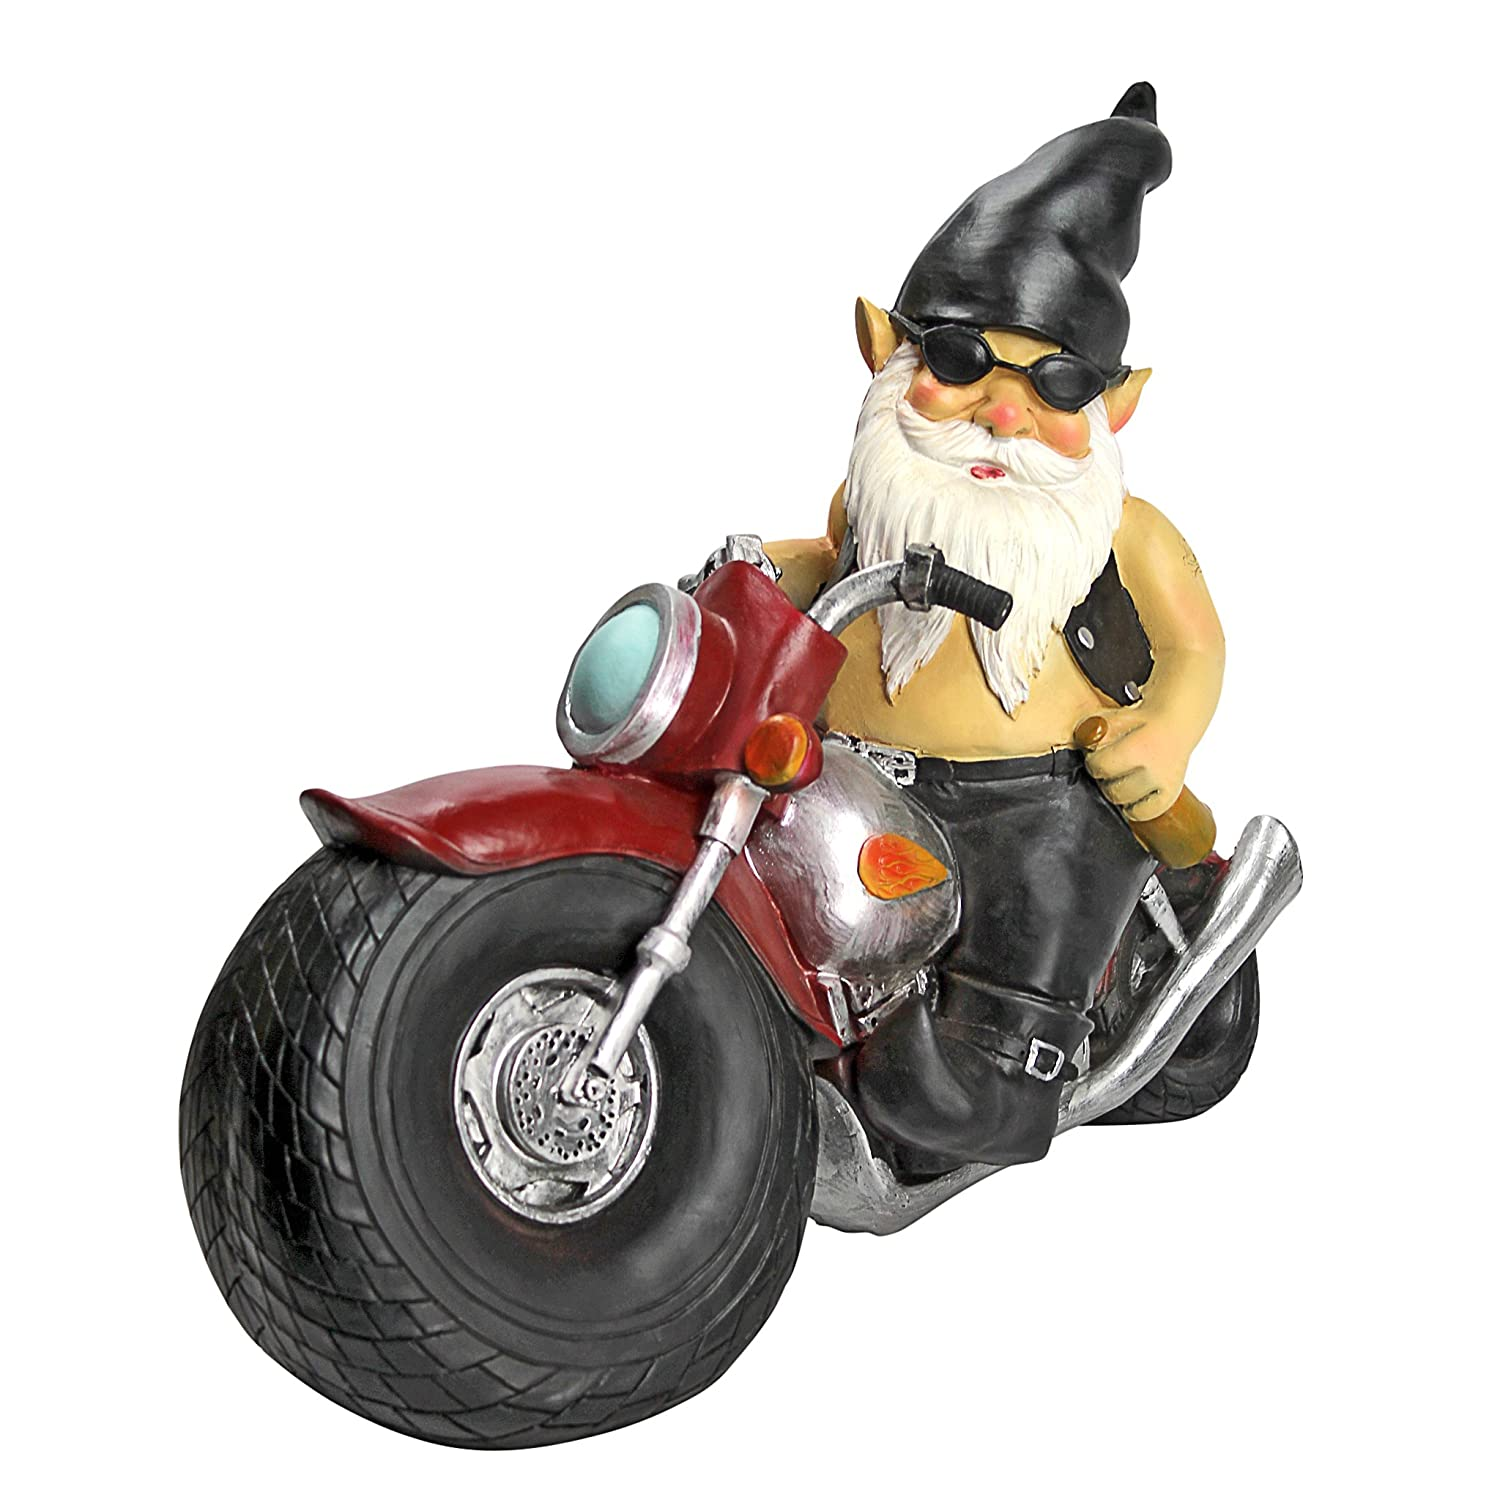 Amazon.com : Garden Gnome Statue   Axle Grease The Biker Gnome   Wild Gnome  Statues   Gnome On Motorcycle Statue : Motorcycle Gnome : Garden U0026 Outdoor